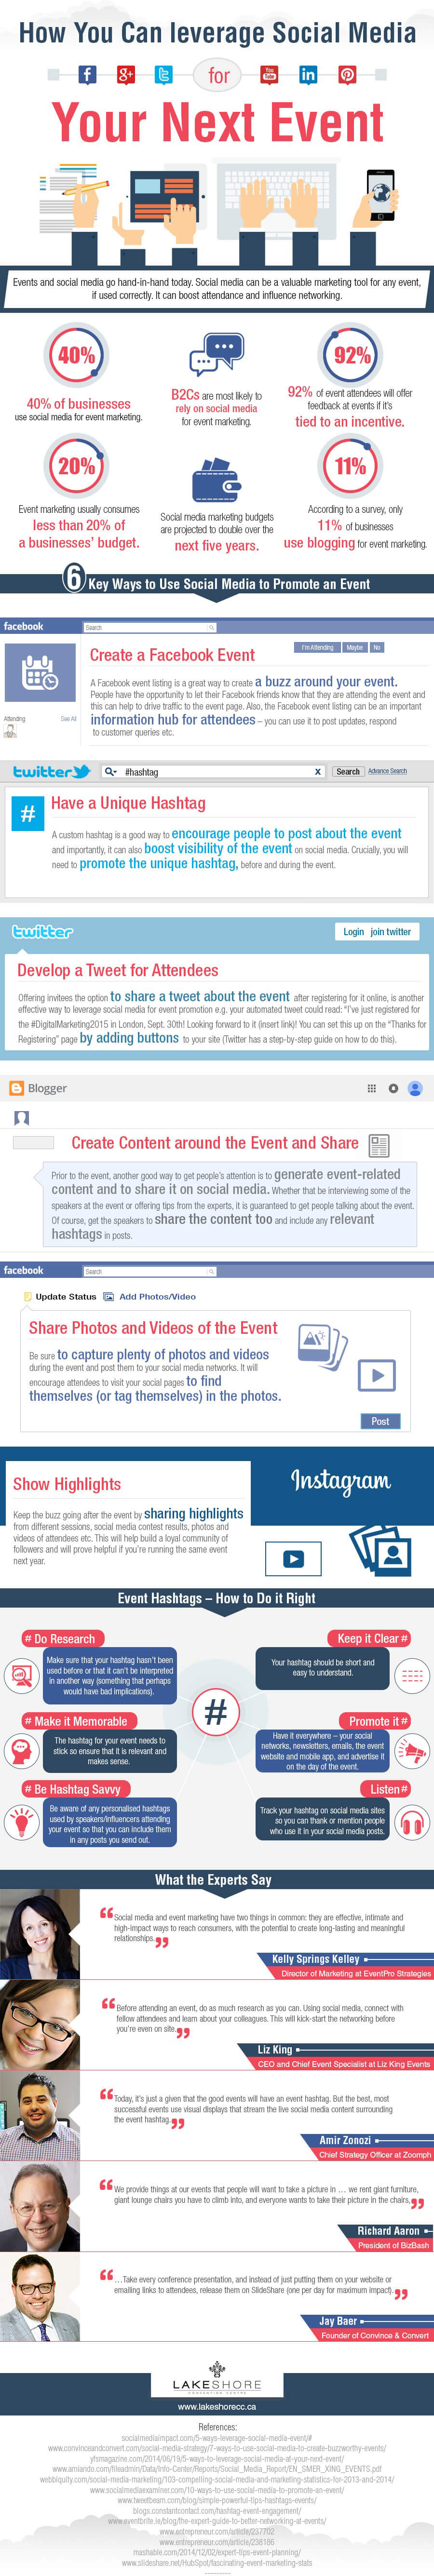 how-to-leverage-social-media-for-your-next-event-infographic